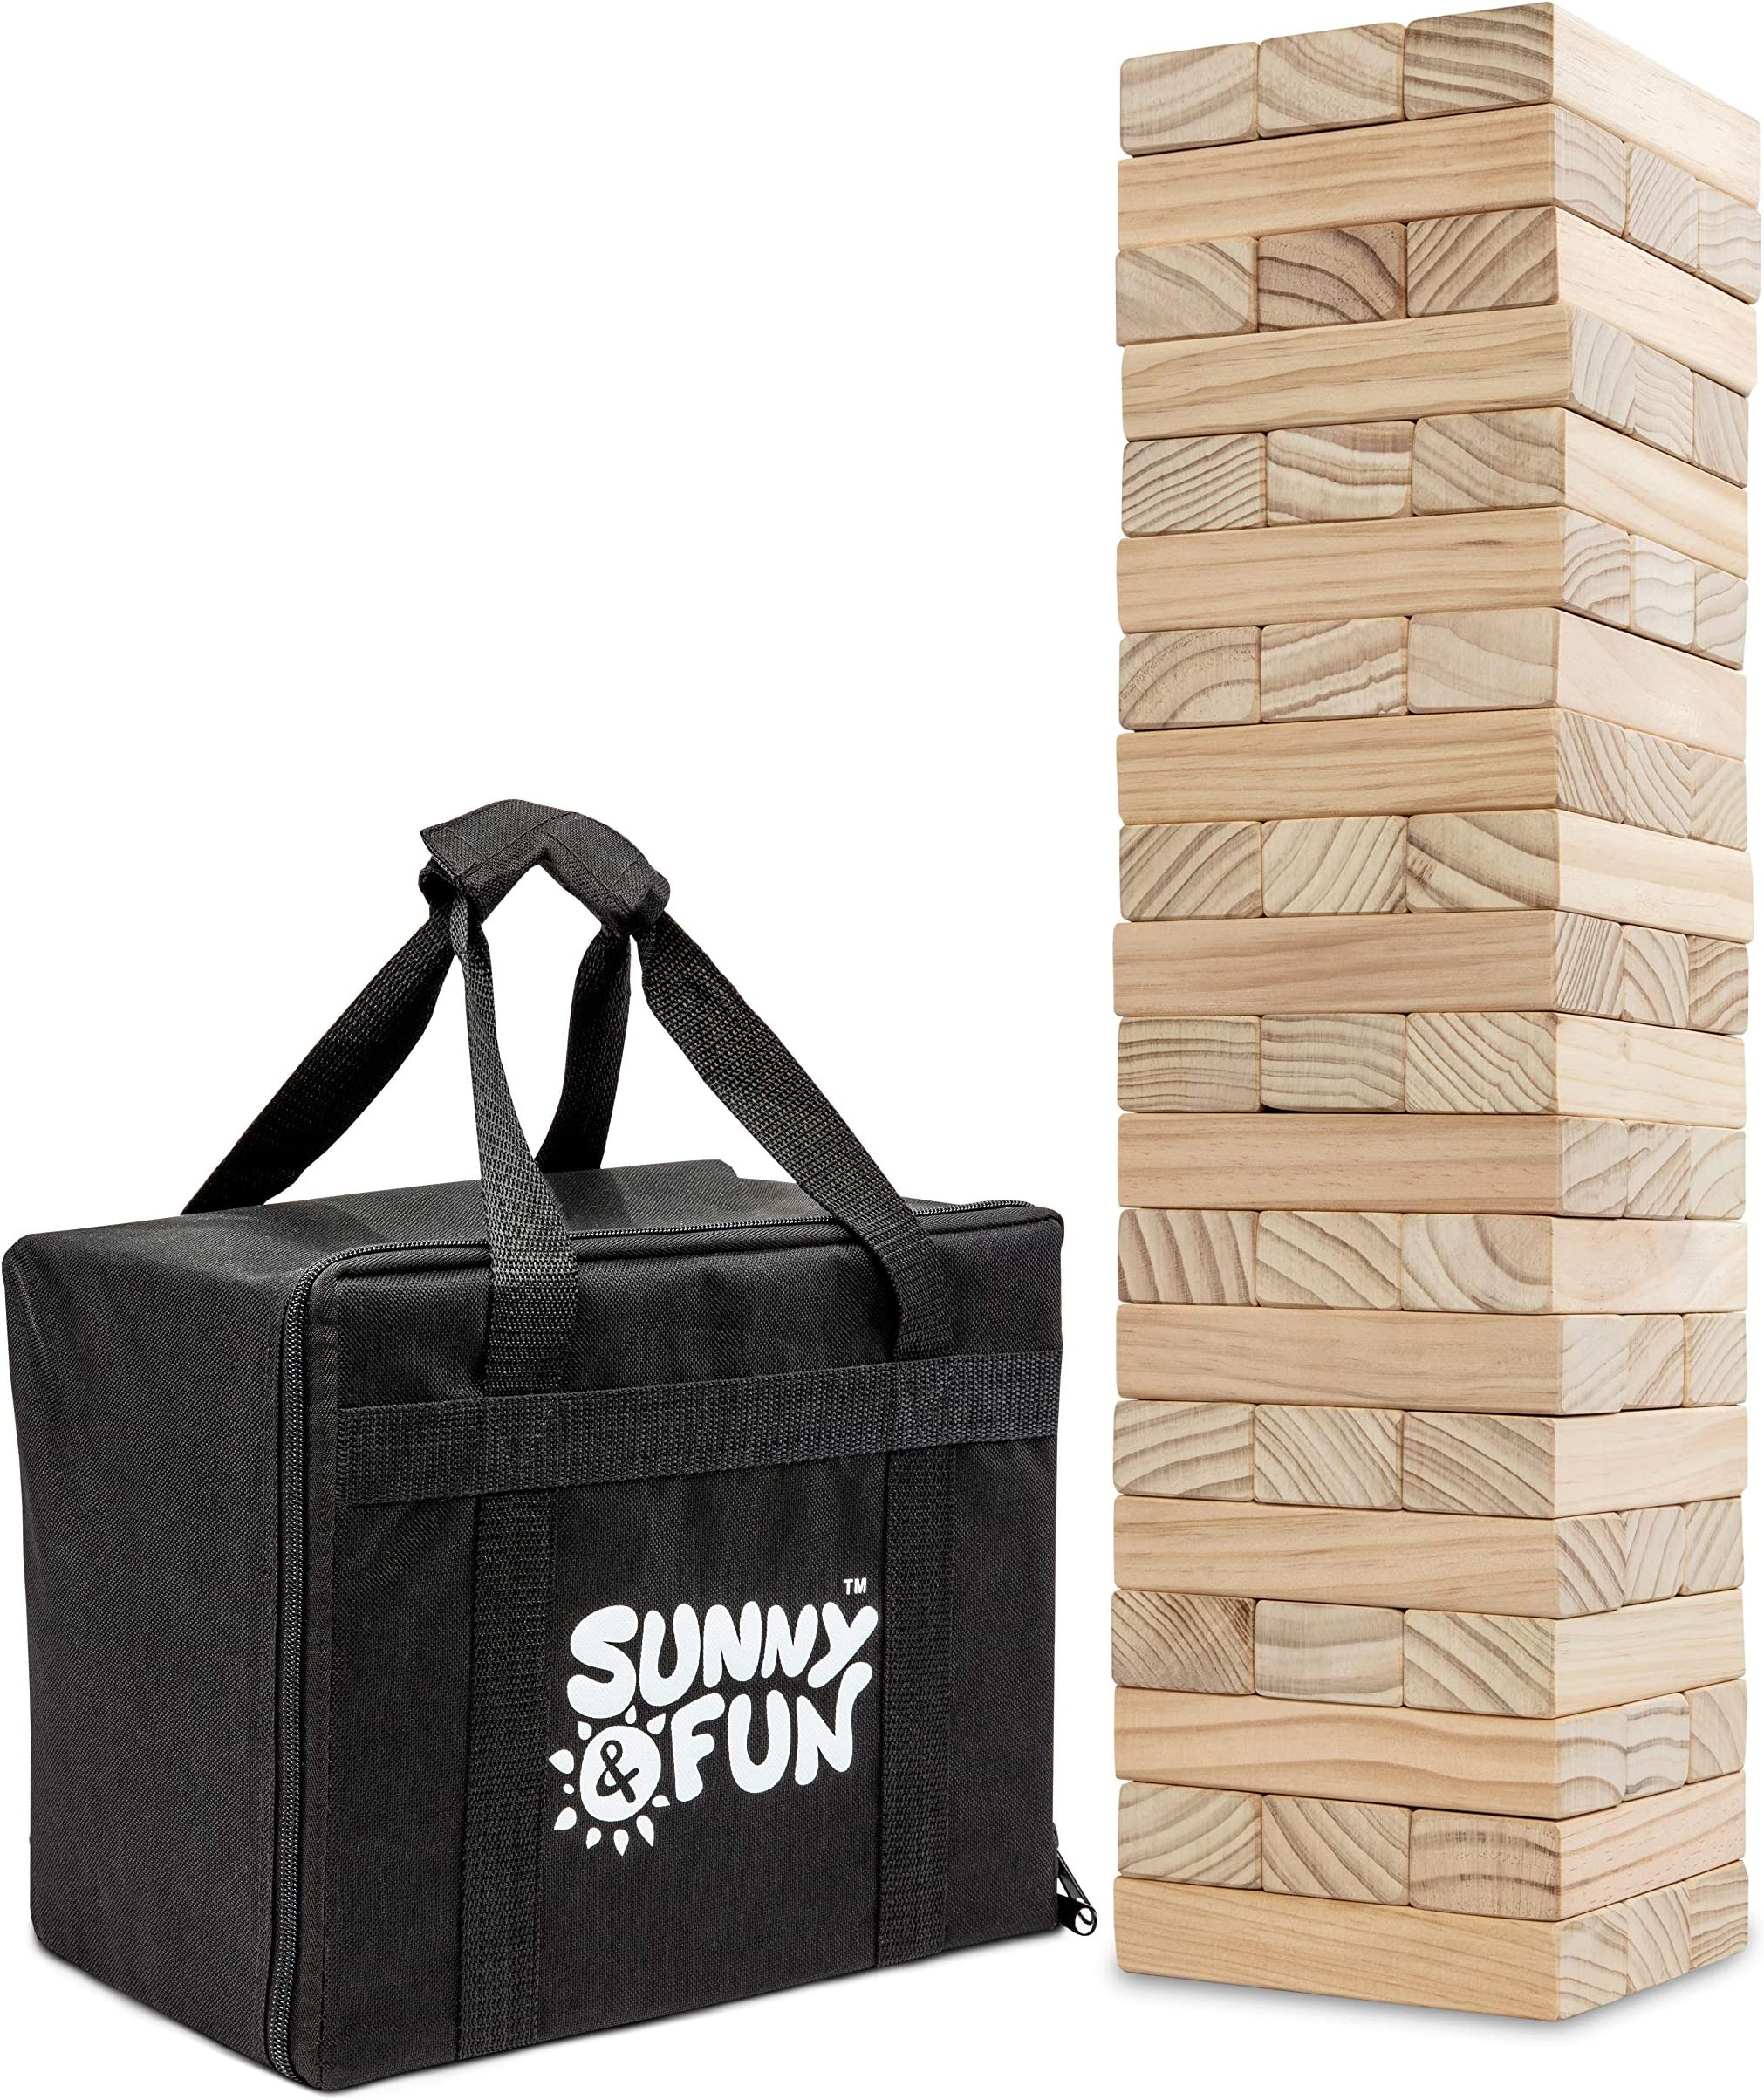 Sunny & Fun Large Tumbling Tower   60 Piece Set Oversized Wooden Toppling Blocks   Indoor & Outdoor Stacking Yard Game for Adults & Kids   Great for Party Lawn Backyard   w/ Storage Carry Bag